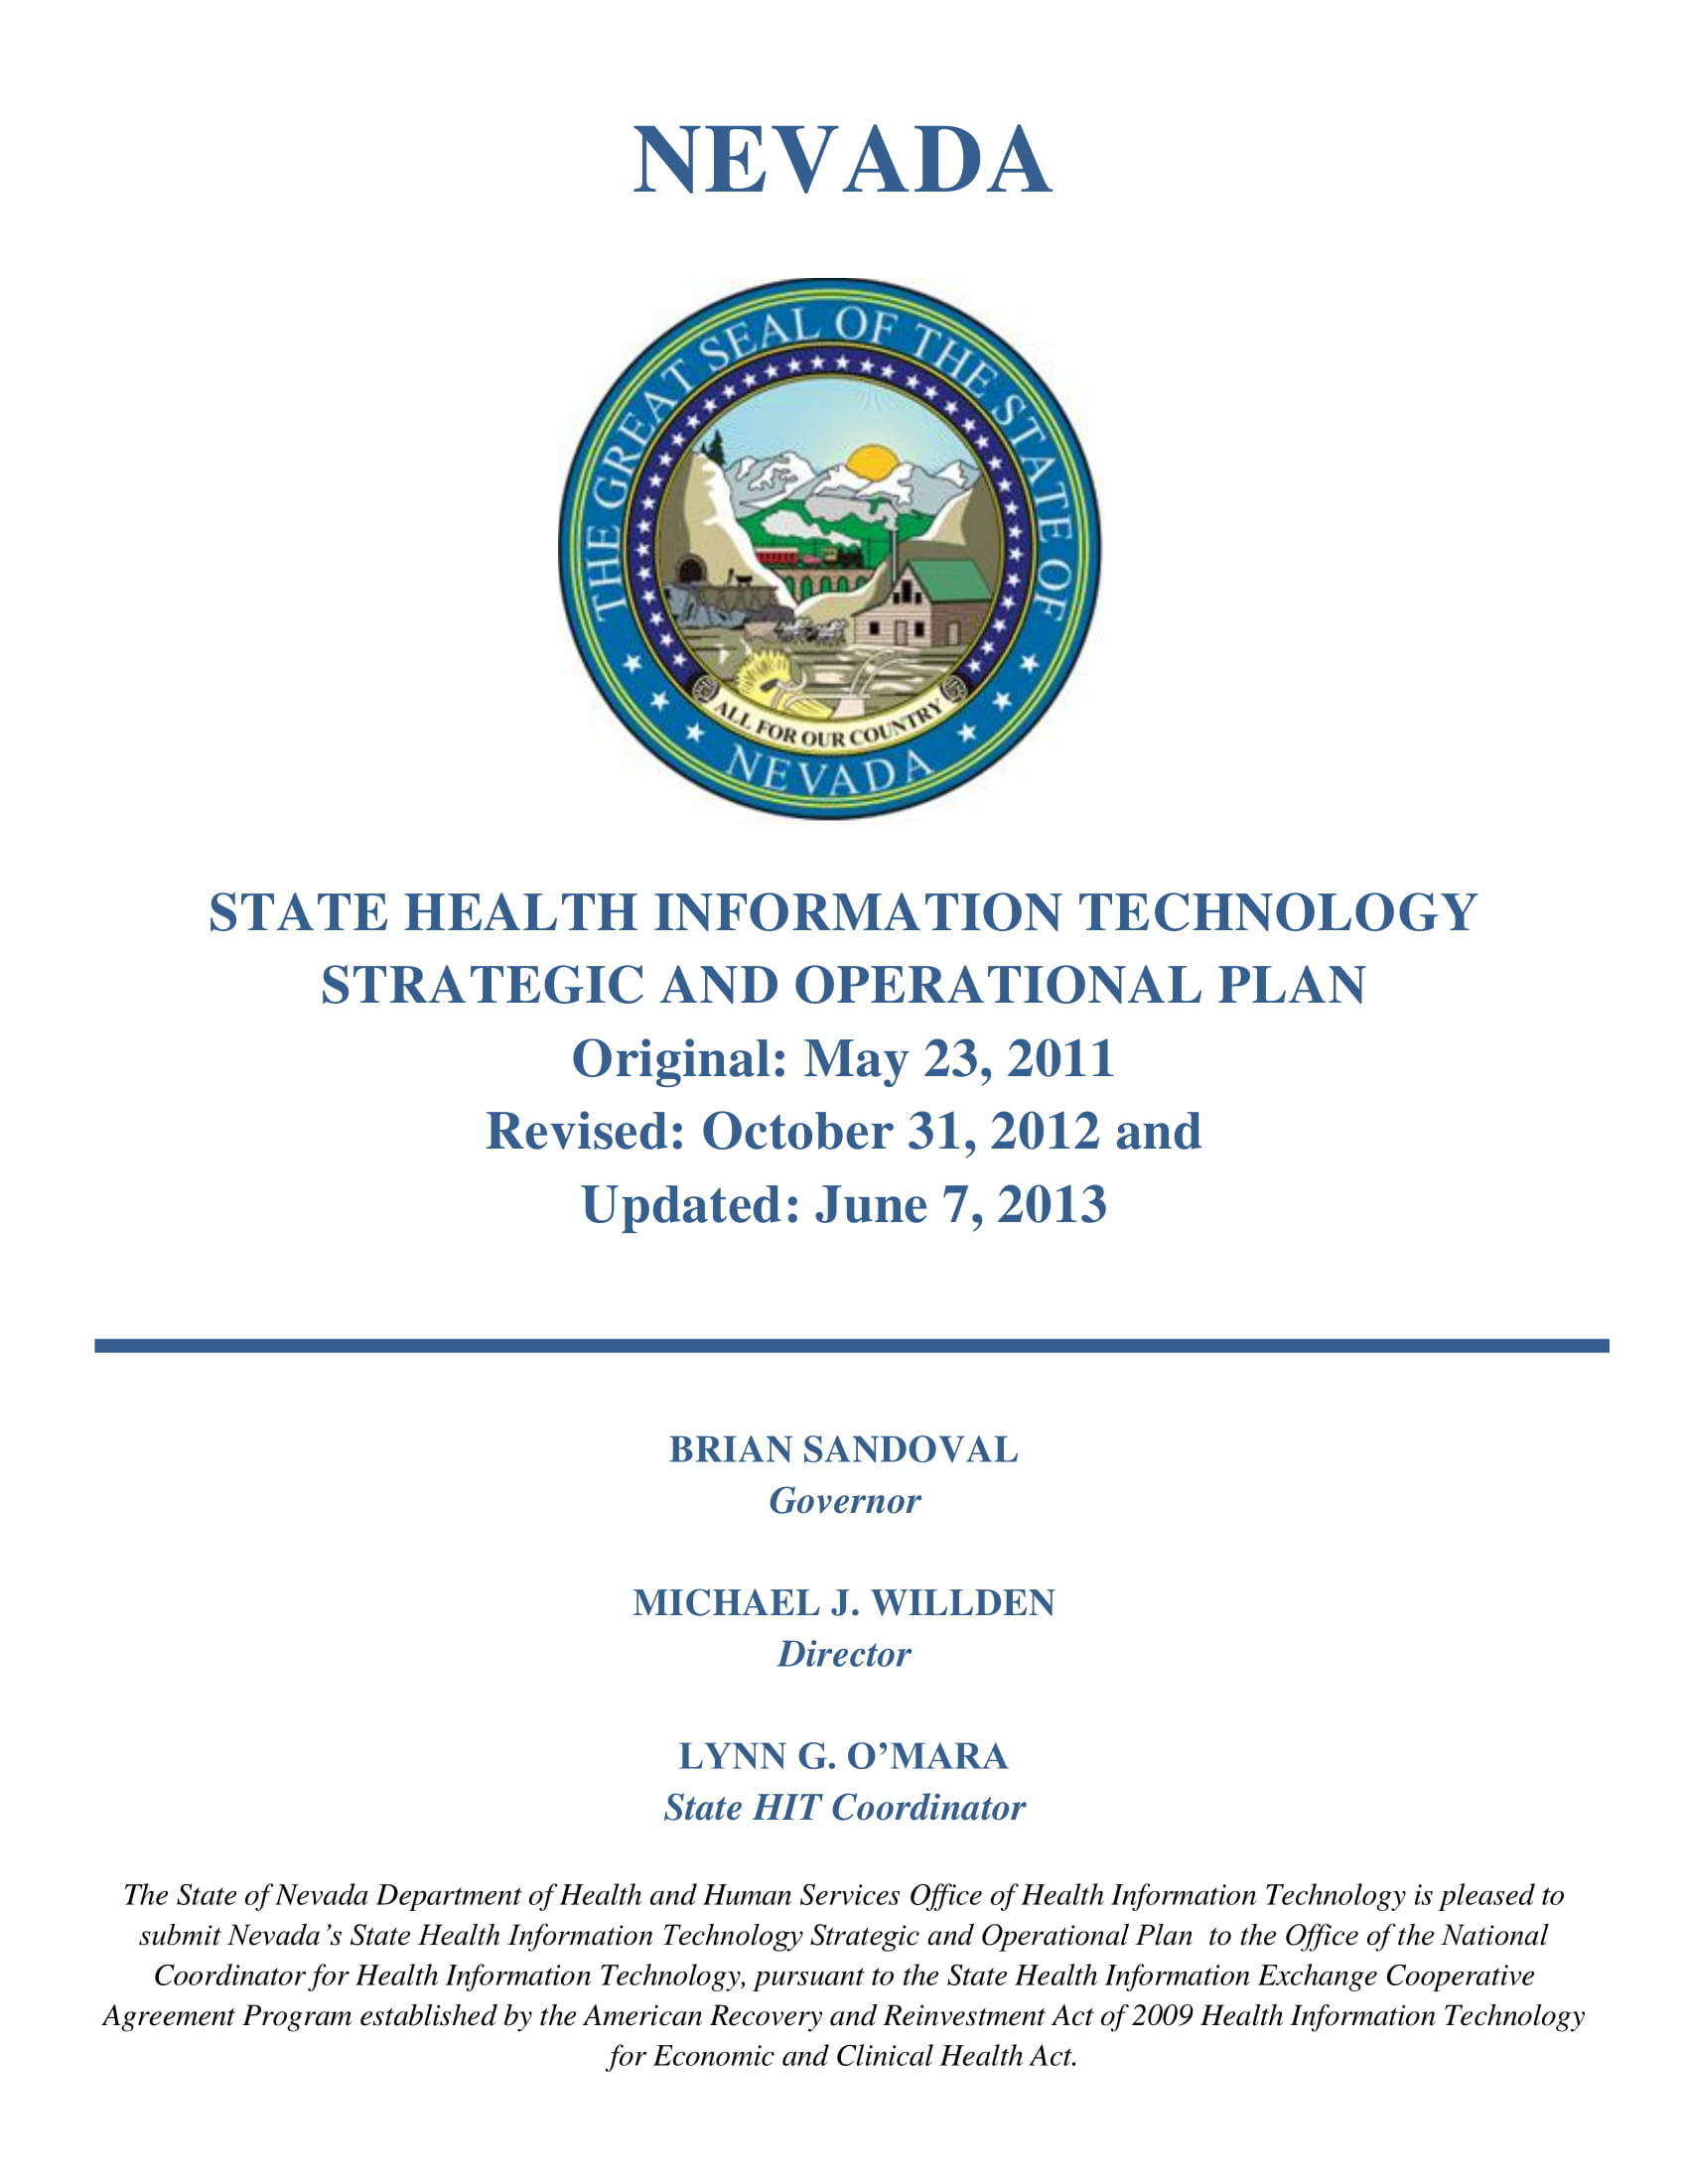 state health information technology strategic and operational plan example 001